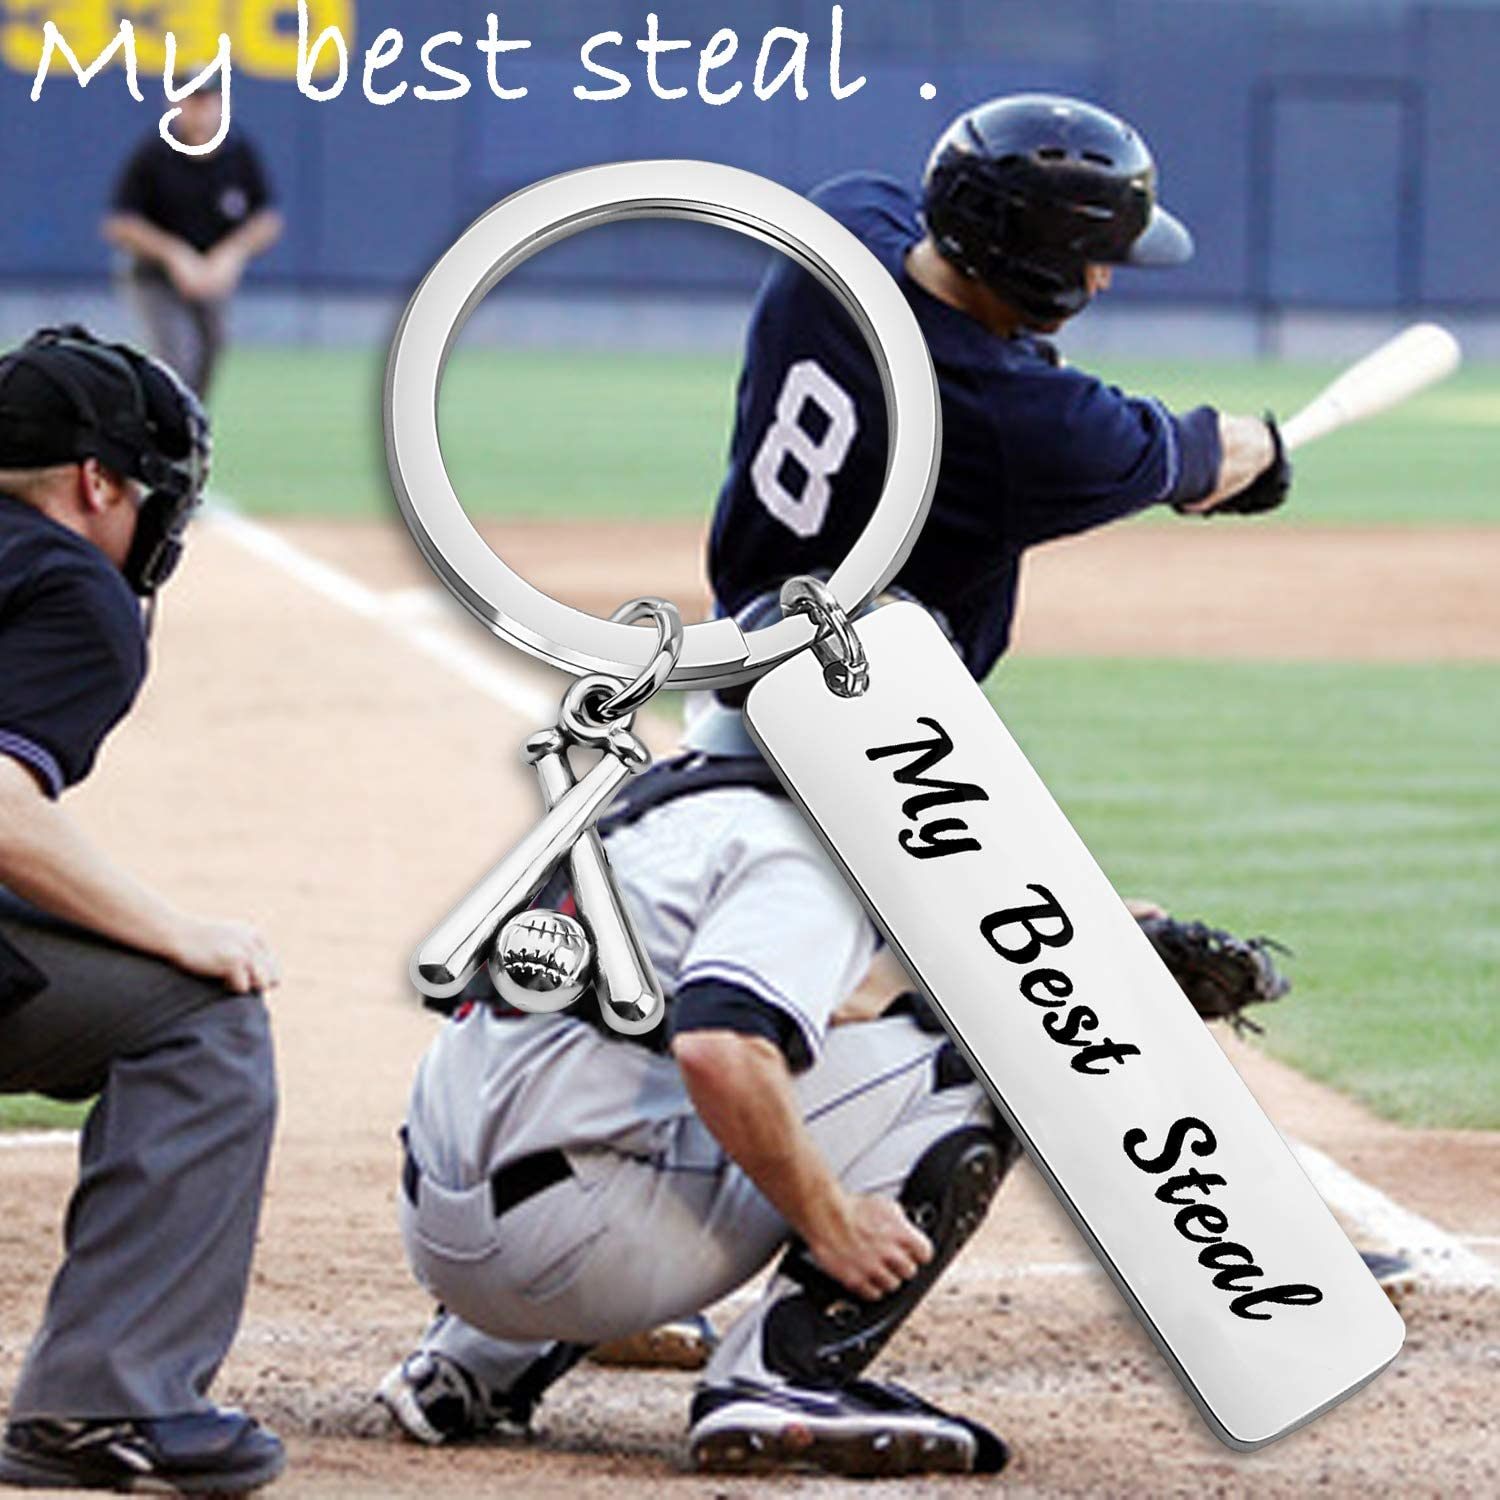 WUSUANED Baseball Player Gift My Best Steal Keychain Baseball Team Gift Baseball Jewelry